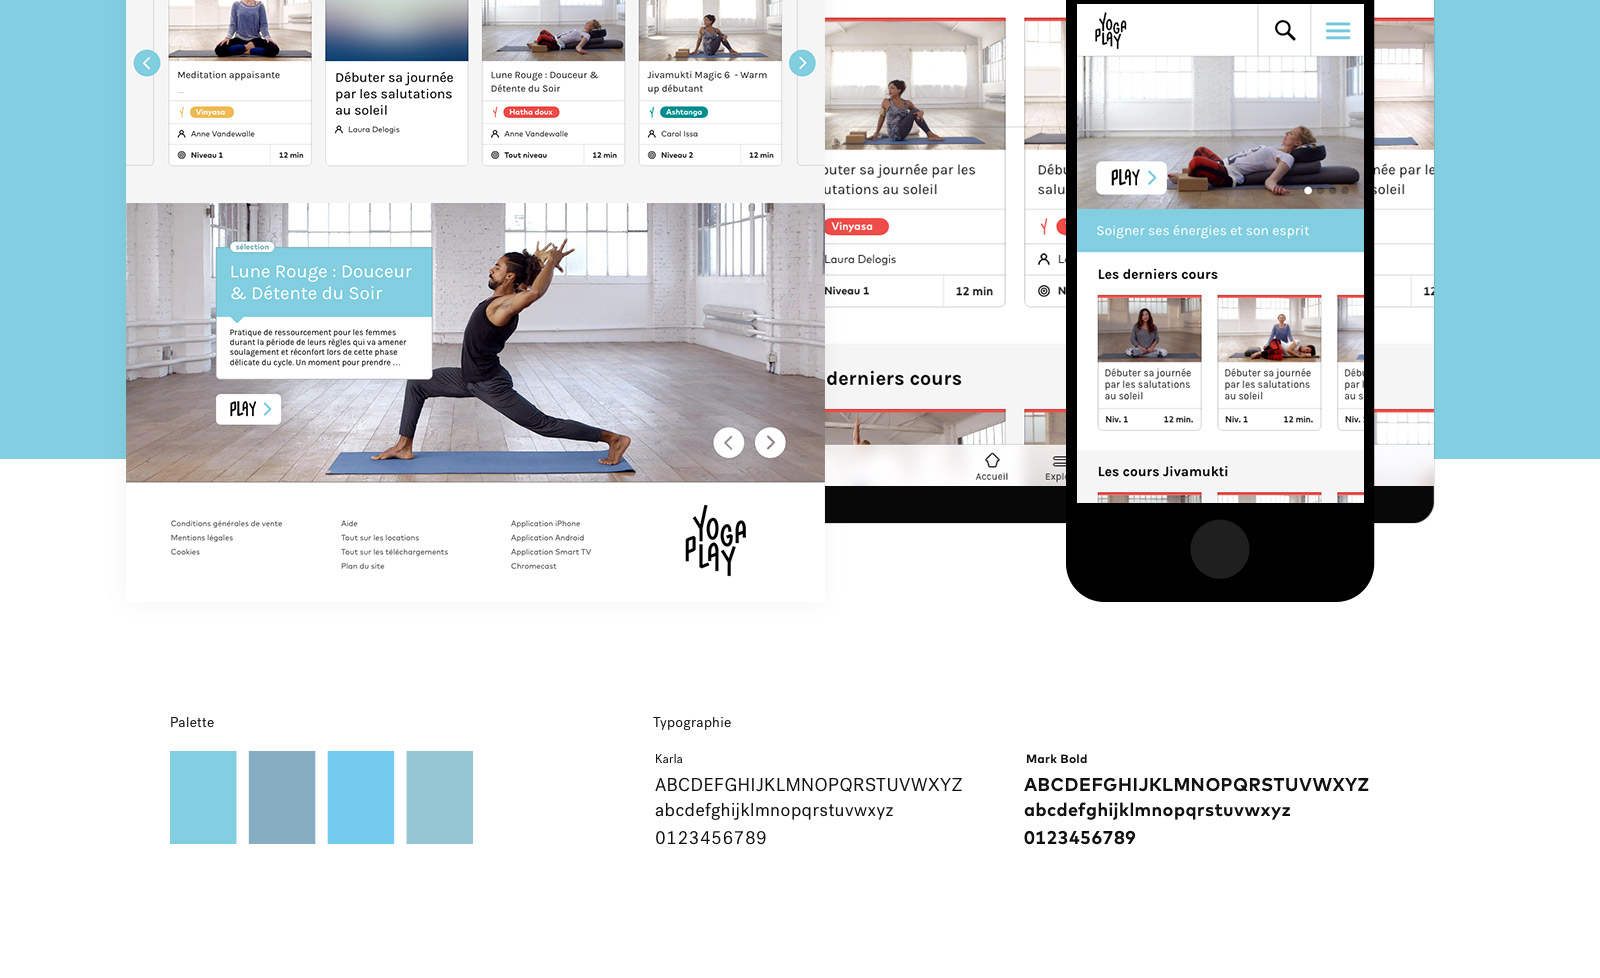 yogaplay_infos // Fabien Stimulak, UX UI Designer, DA digital, Paris, France